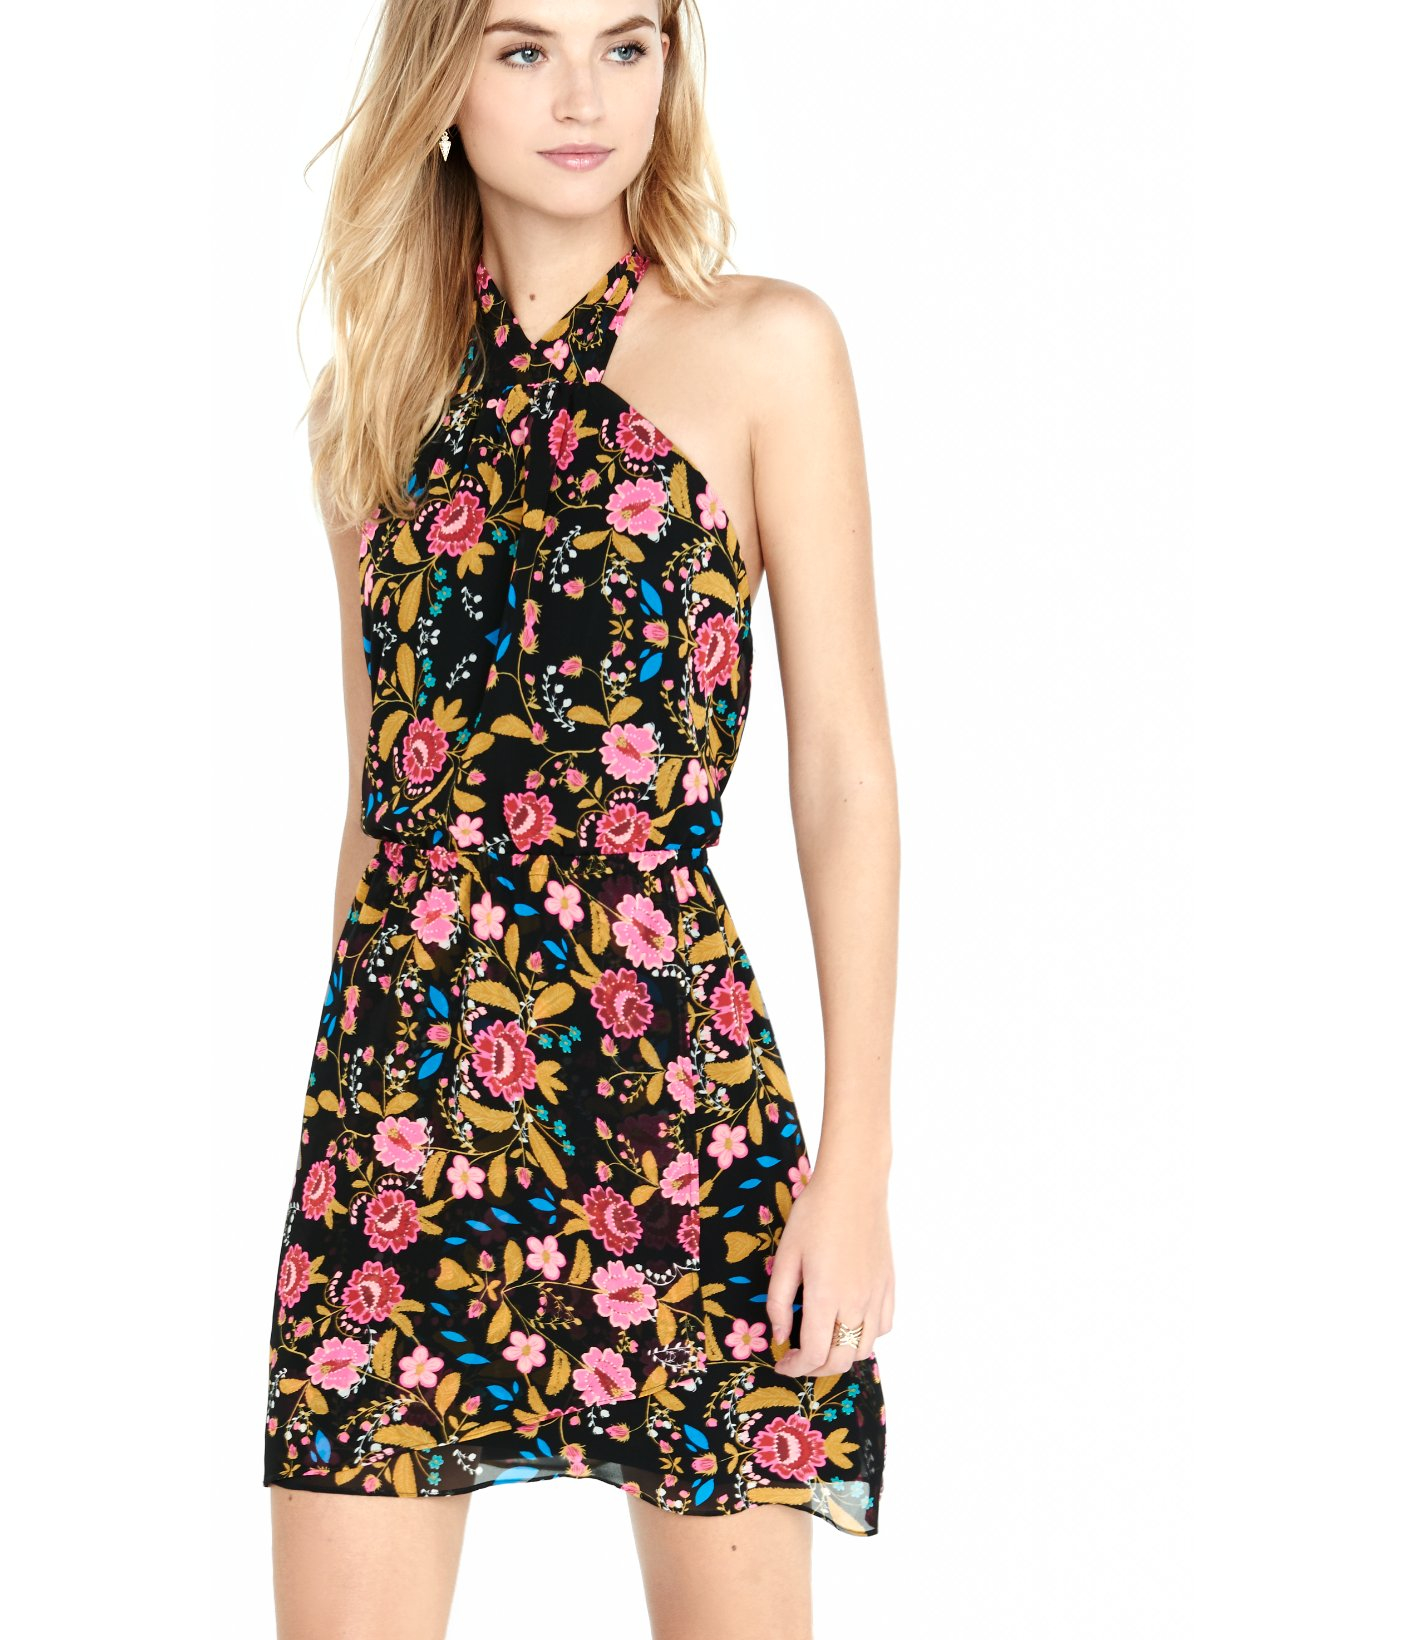 871637fc Express Floral Print Chiffon Tie-neck Halter Dress in Black - Lyst